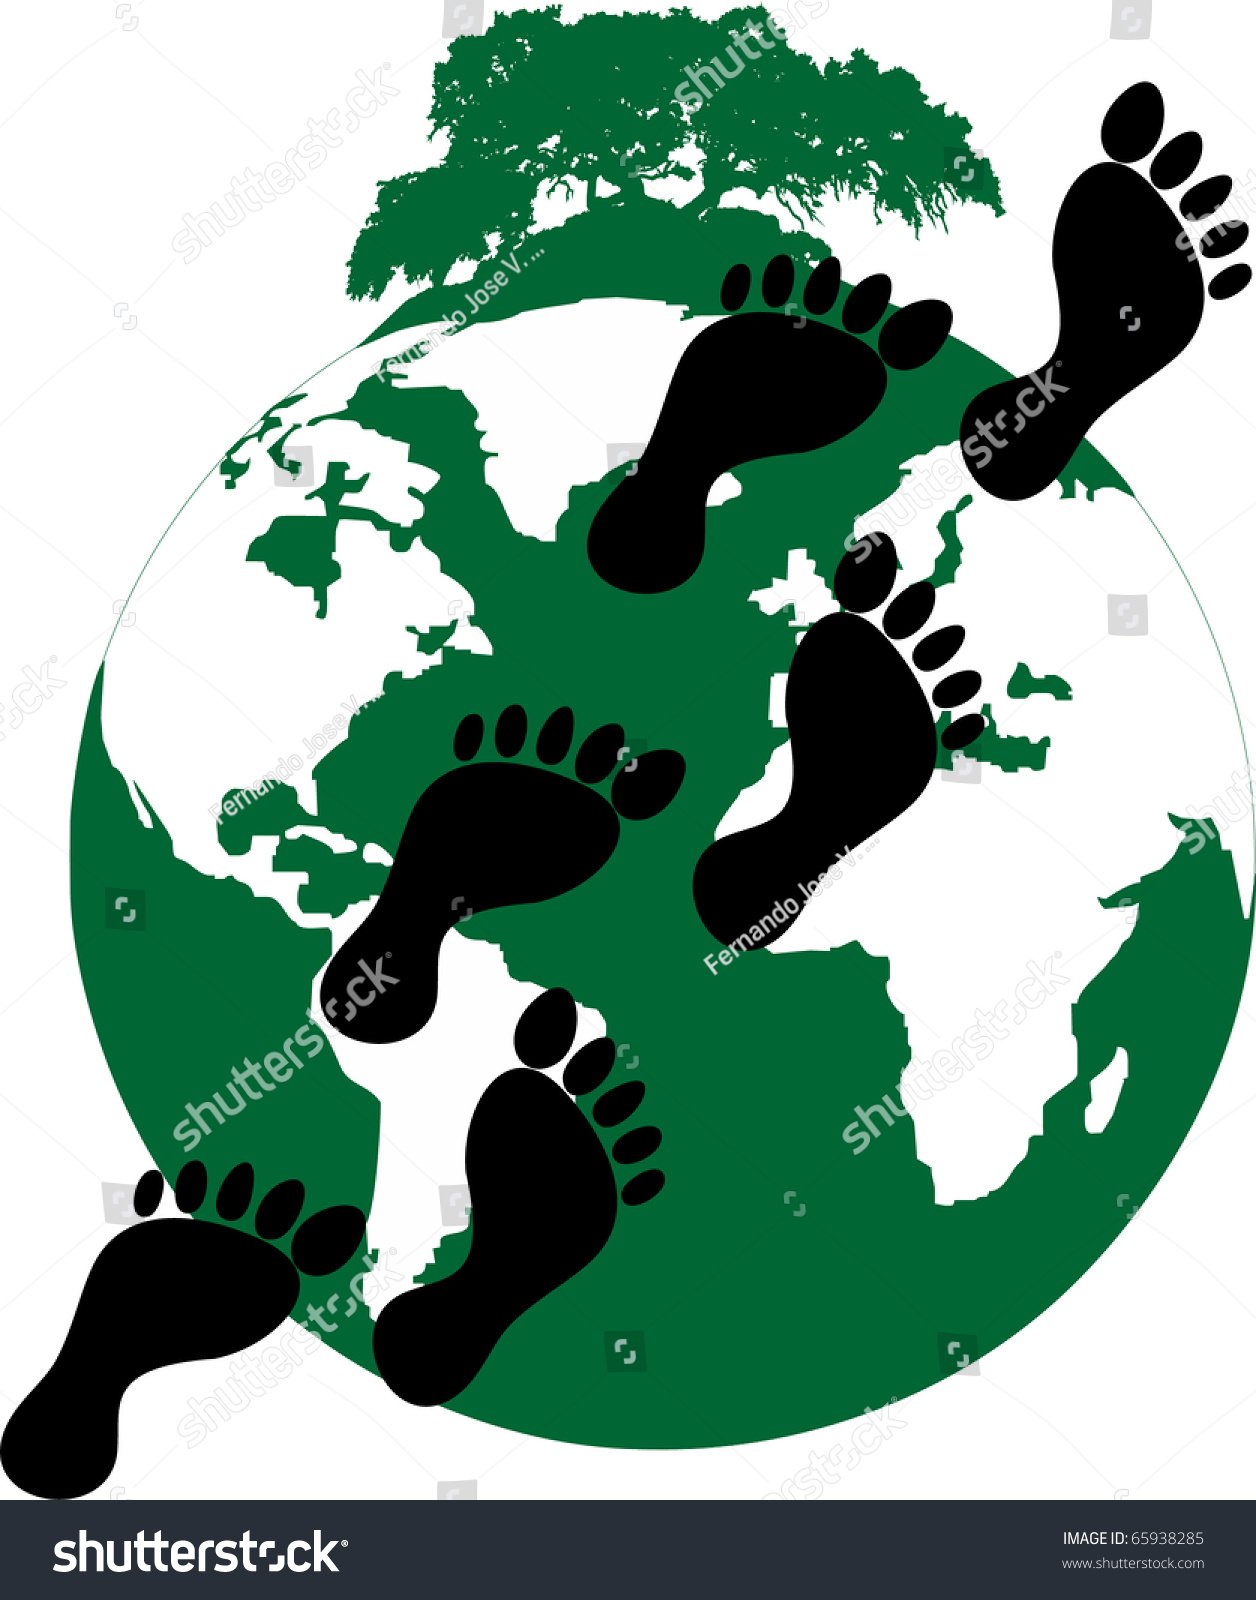 Illustration Ecological Footprint Mankind On Planet Stock Vector ...